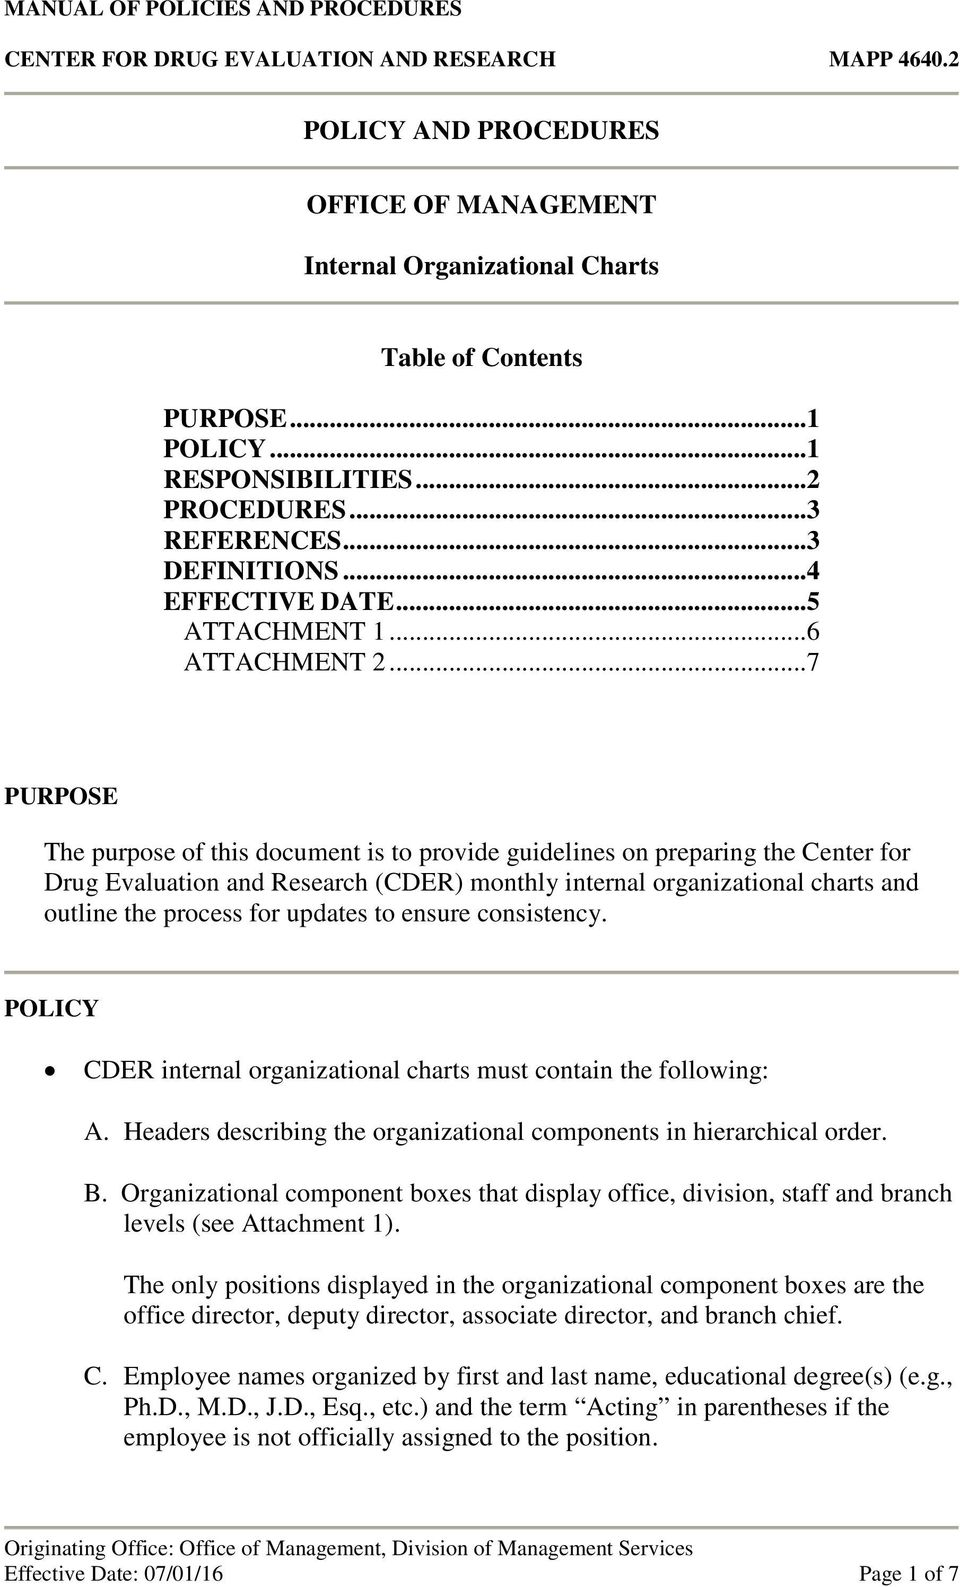 purpose of privacy policy in an organization pdf